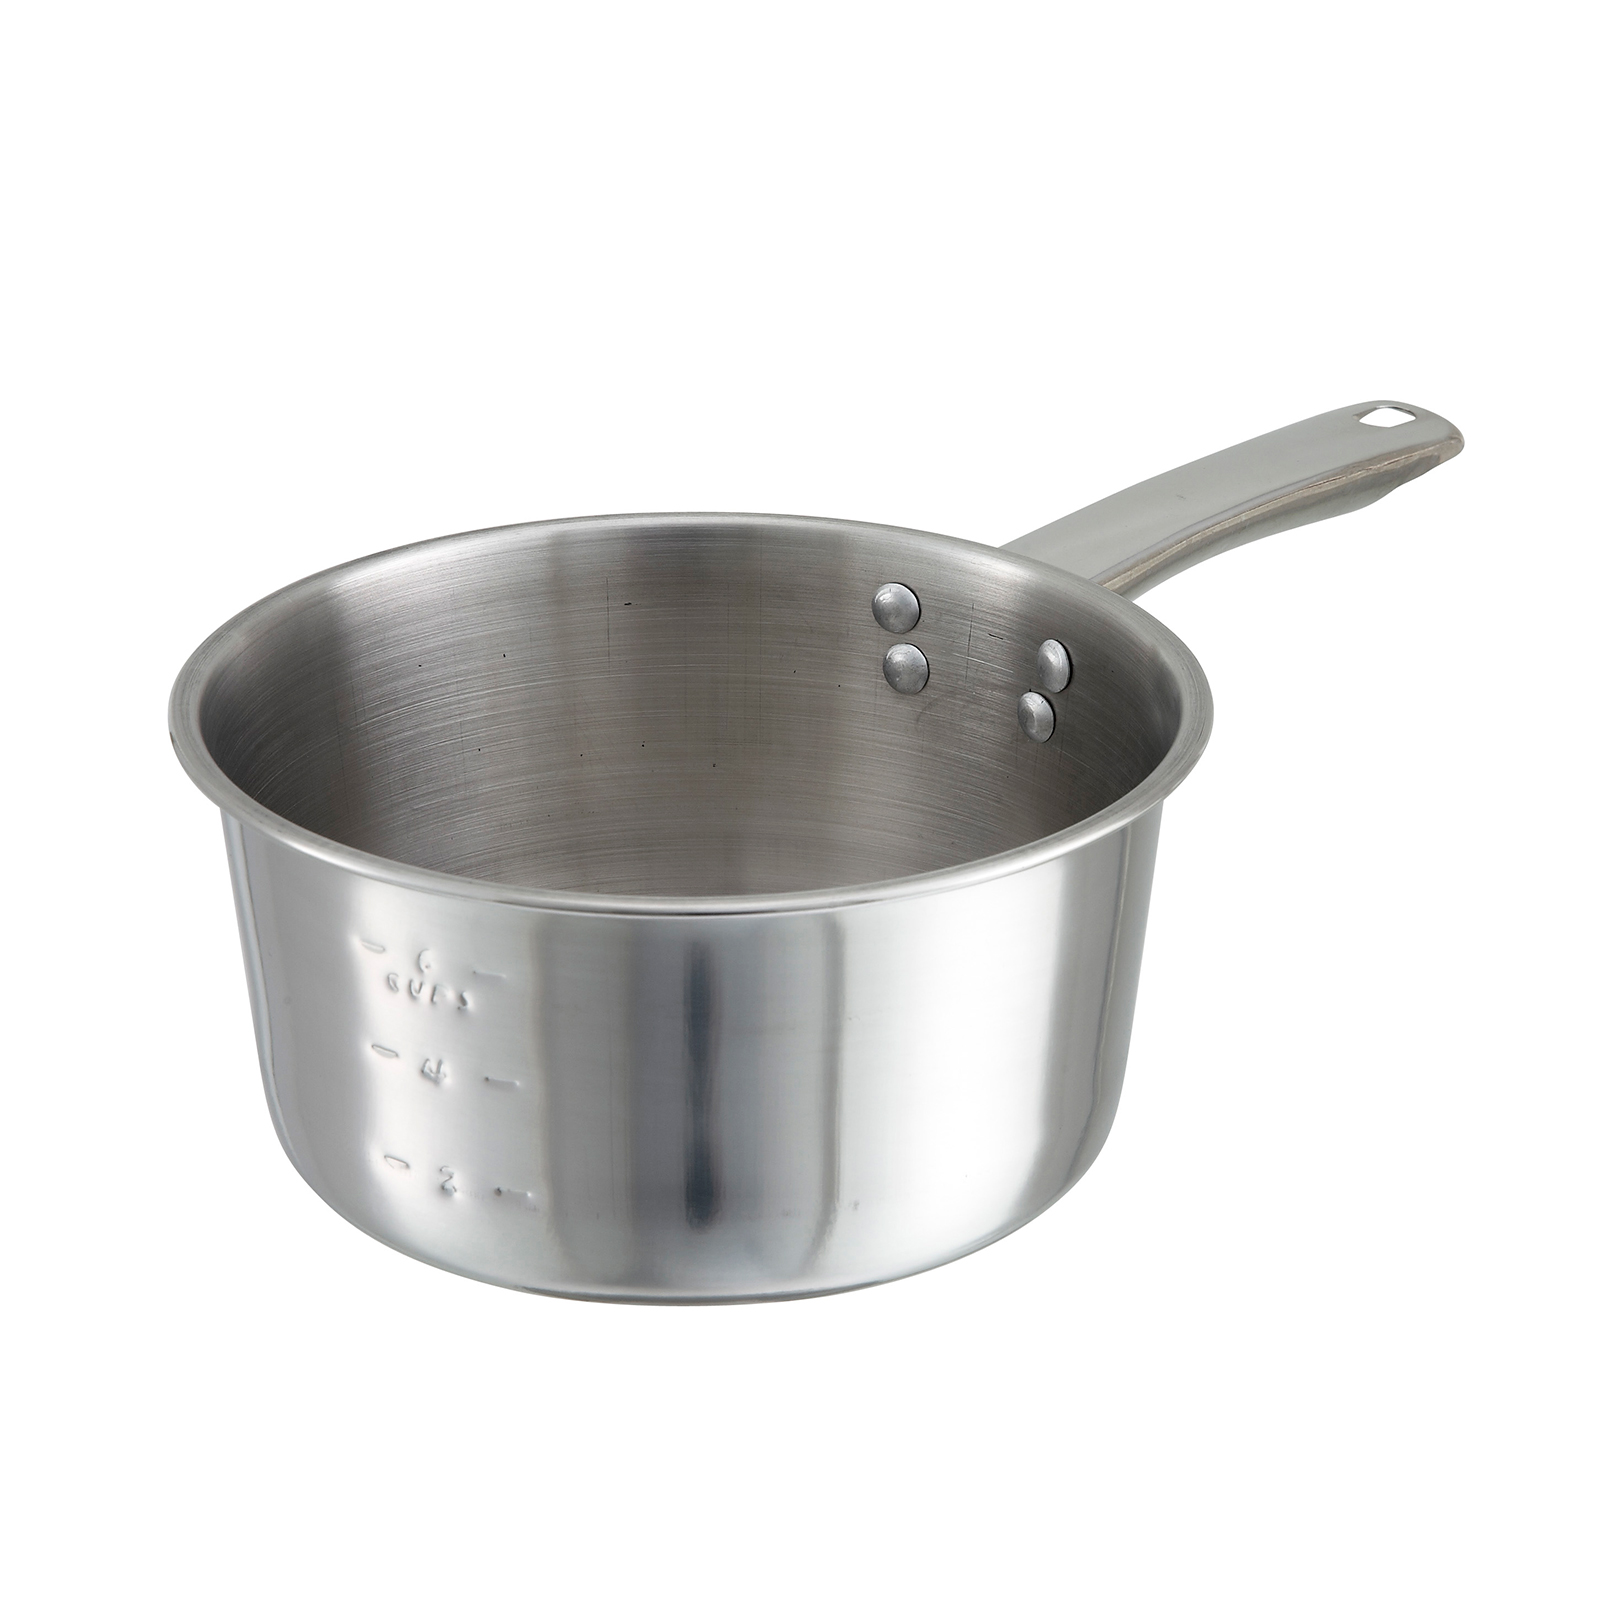 Winco SAP-1.5 sauce pan